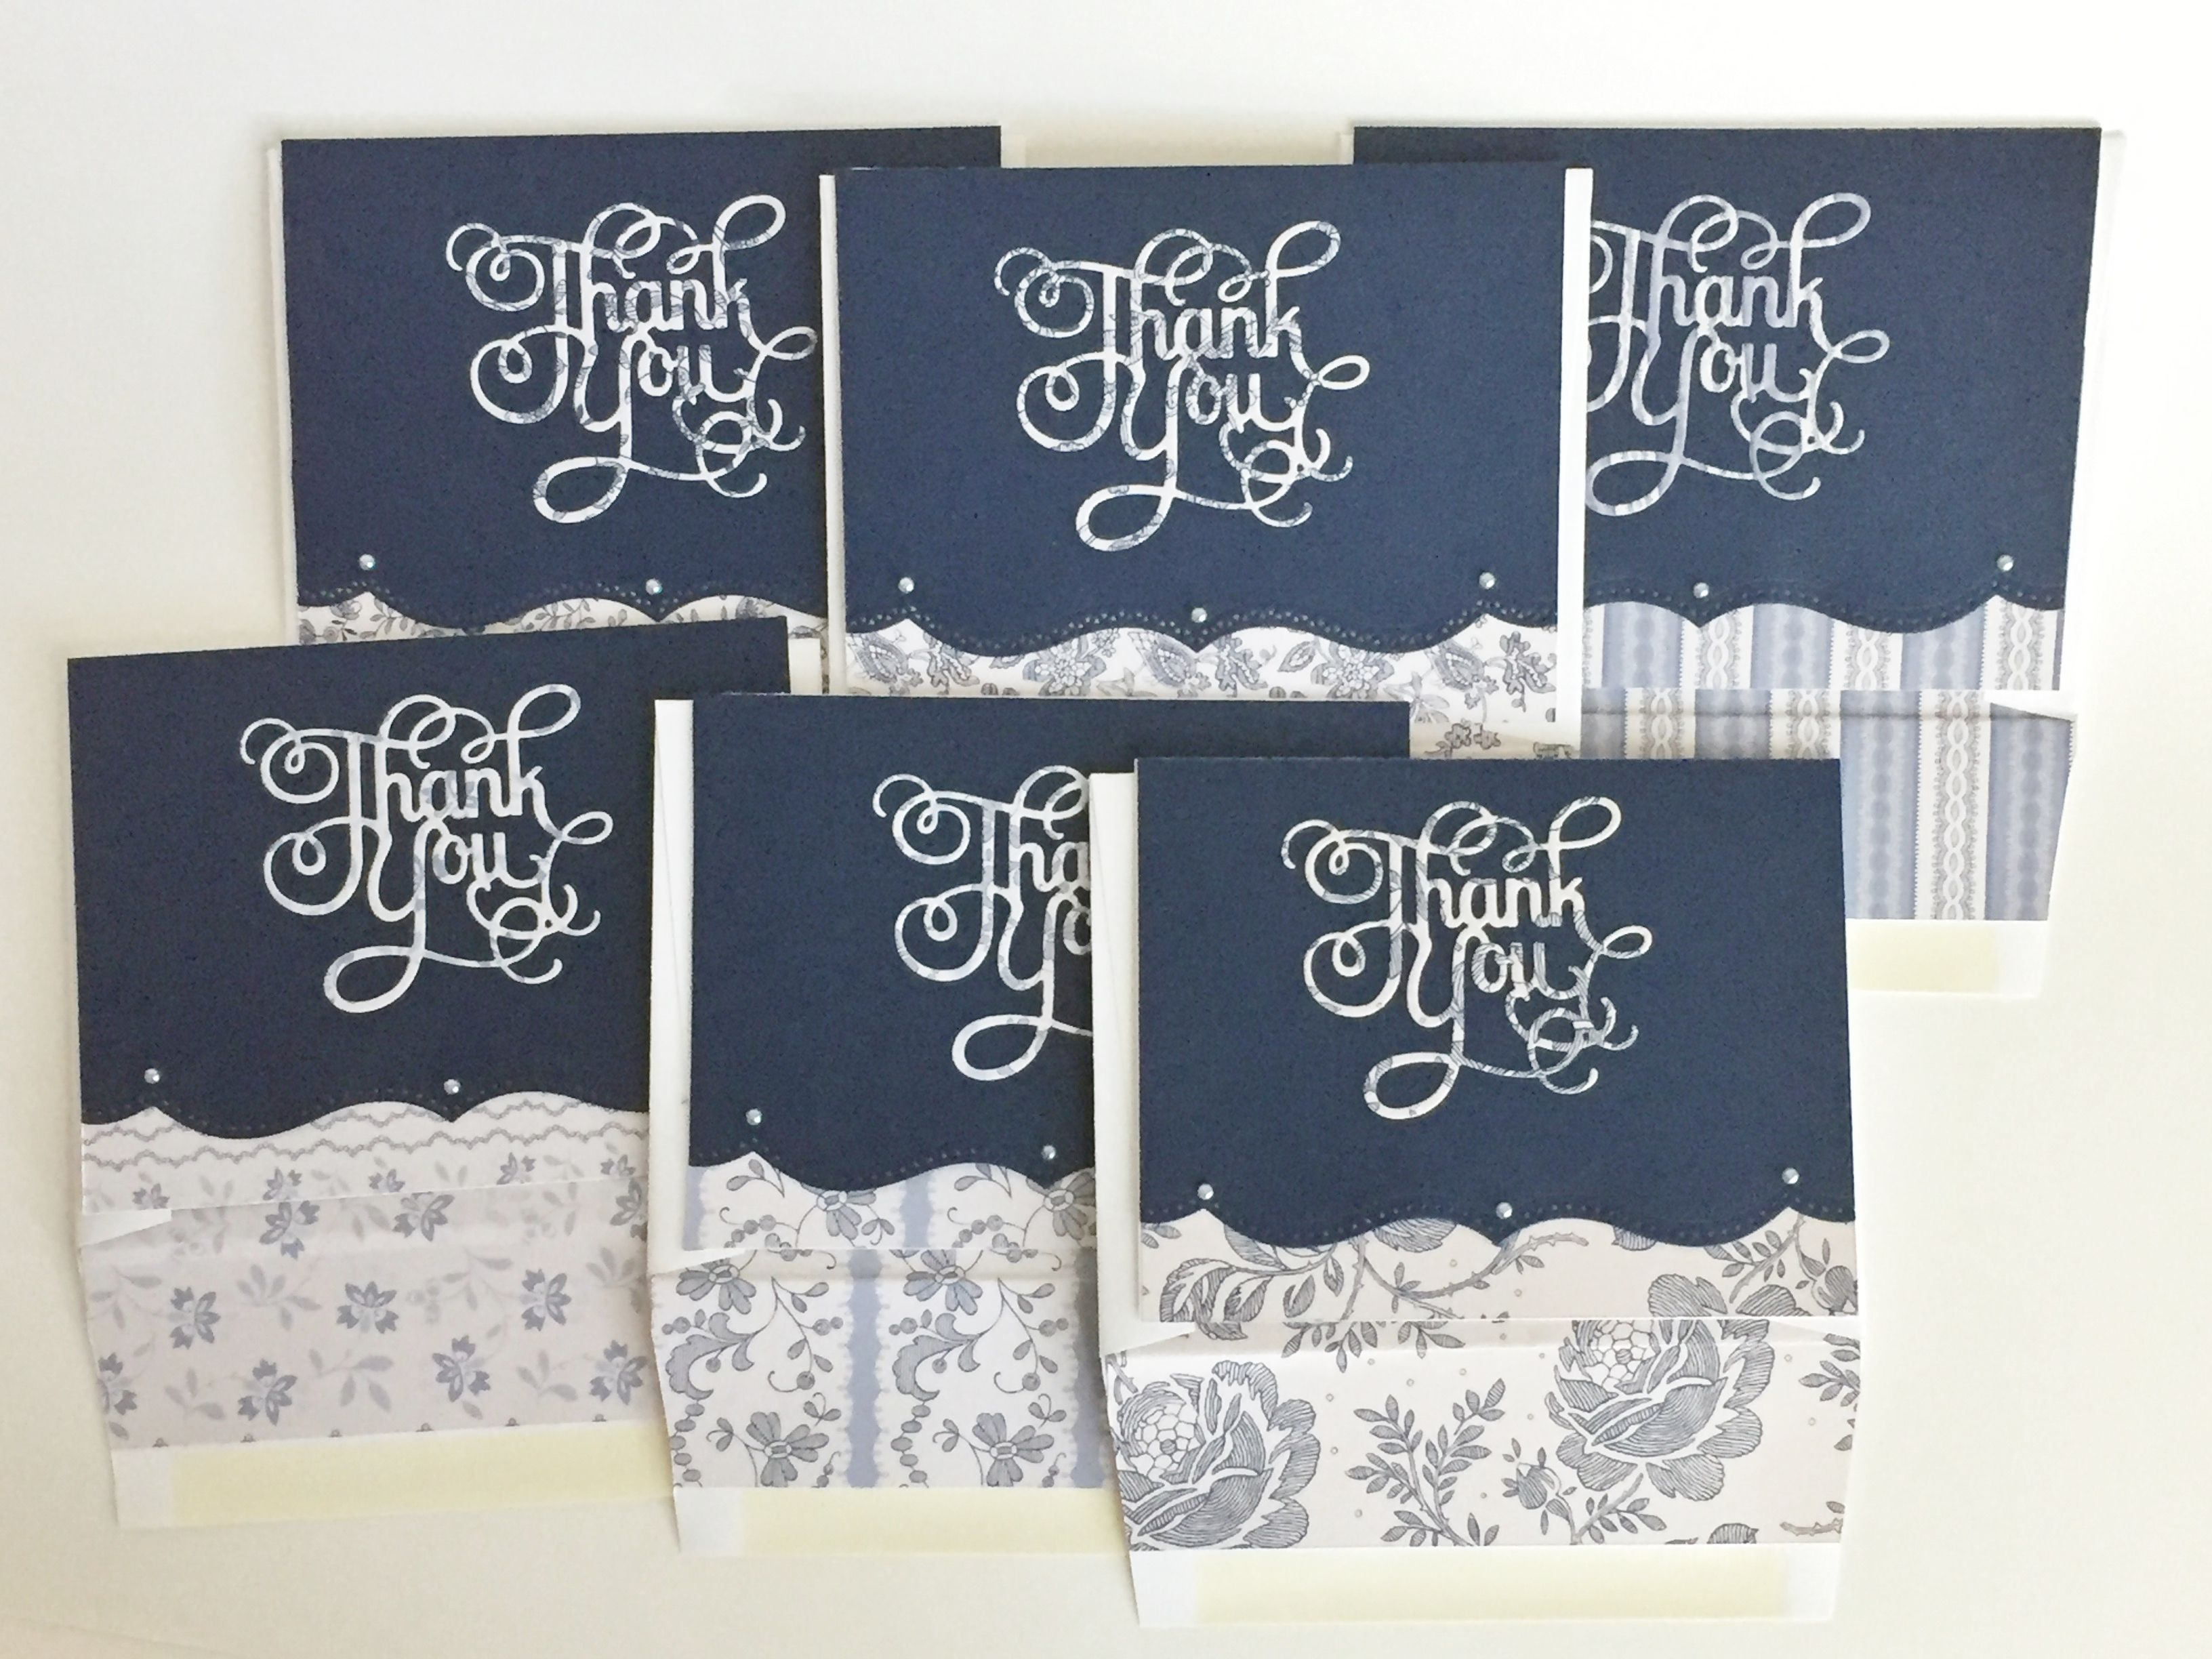 Handmade Thank You Cards A Nice Way To Say Thank